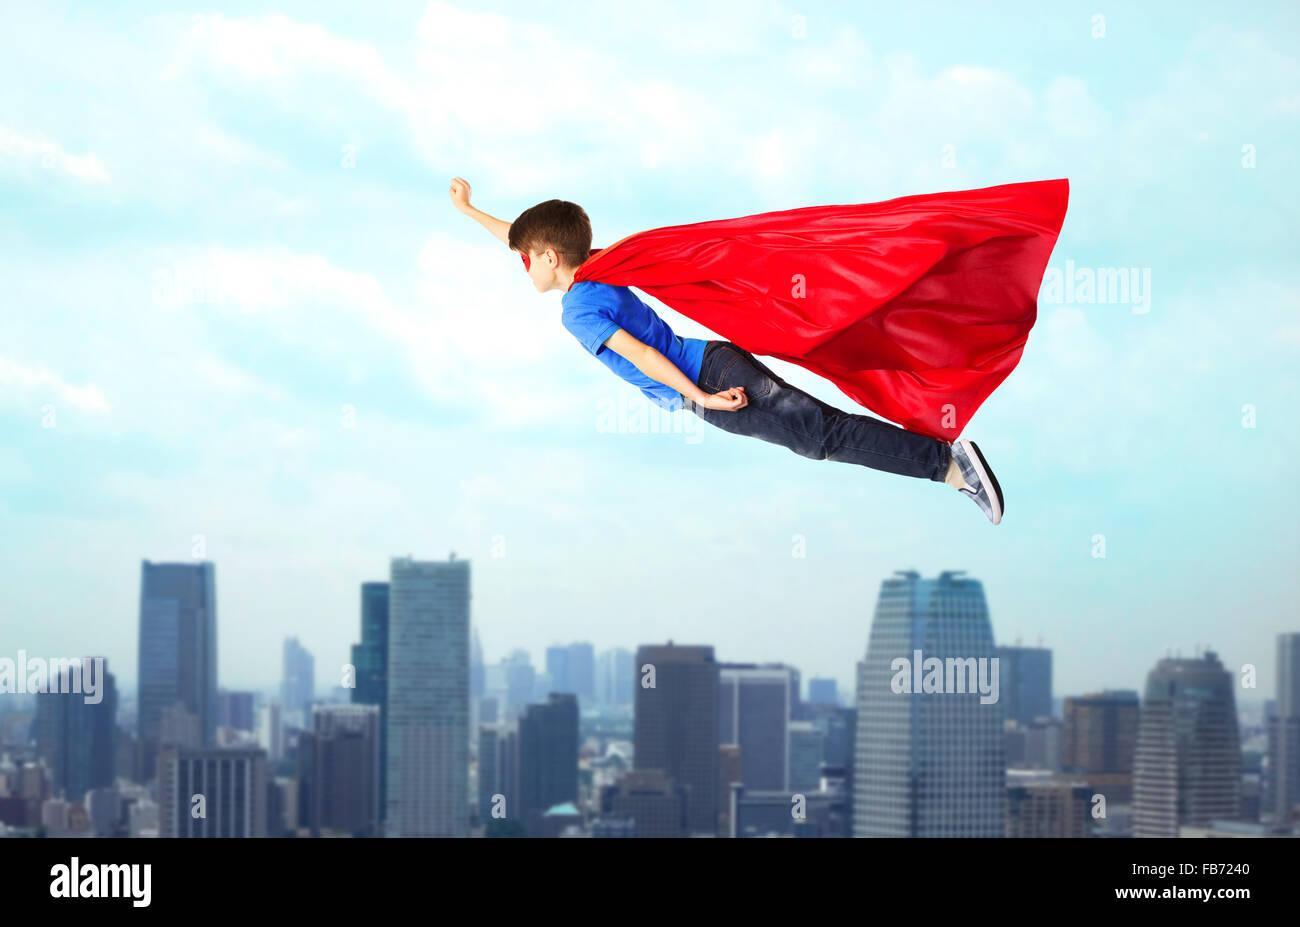 Superman flying stock photos superman flying stock images page 2 boy in red superhero cape and mask flying on air stock image publicscrutiny Gallery